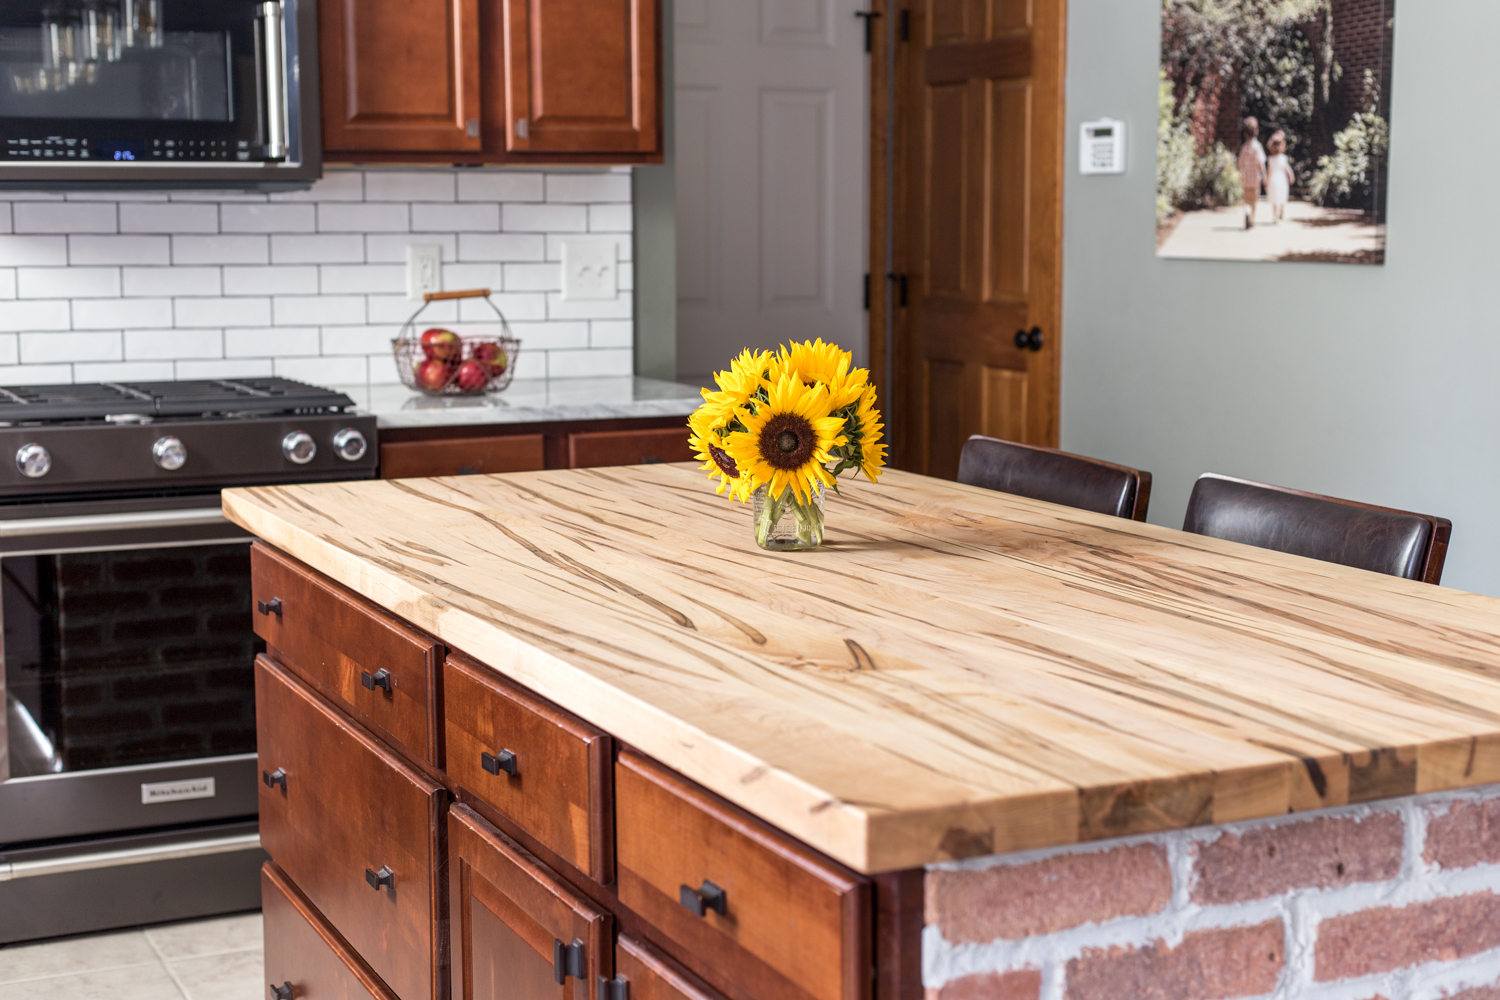 wooden countertop on brick island kitchen